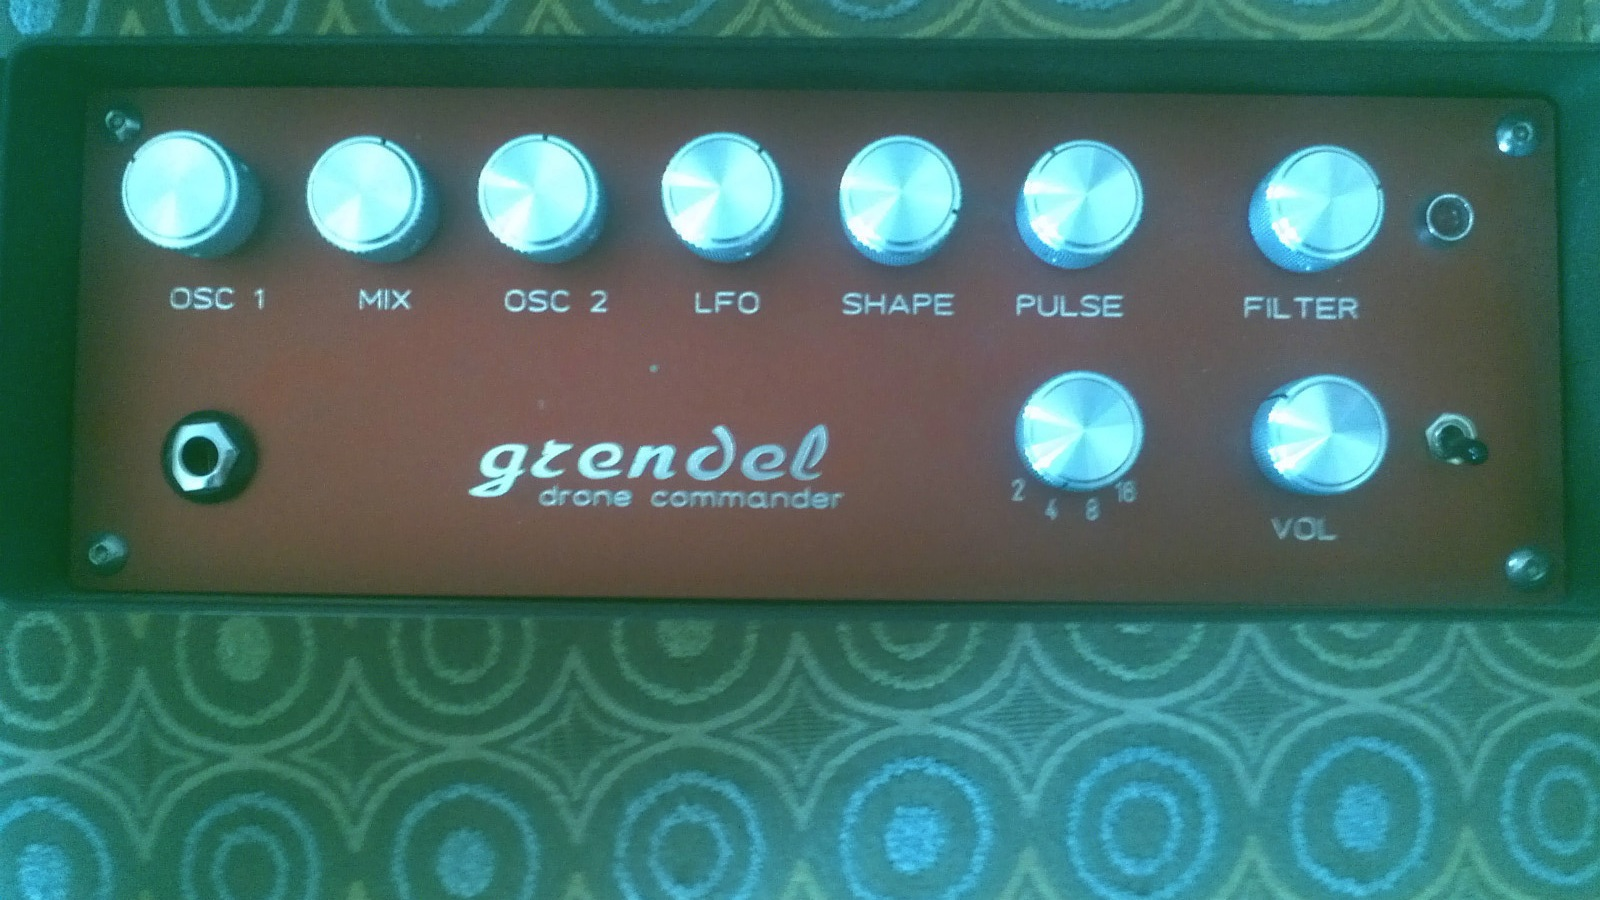 grendel drone commander with Grendel Drone  Mander Synth on Tune In Tokyo besides Radikal Technologies 162907407057777 moreover Fiche also 1901843 Grendel Drone  mander Massive Analog Synth Free Shipping In Us Canada besides Drone 20 mander.